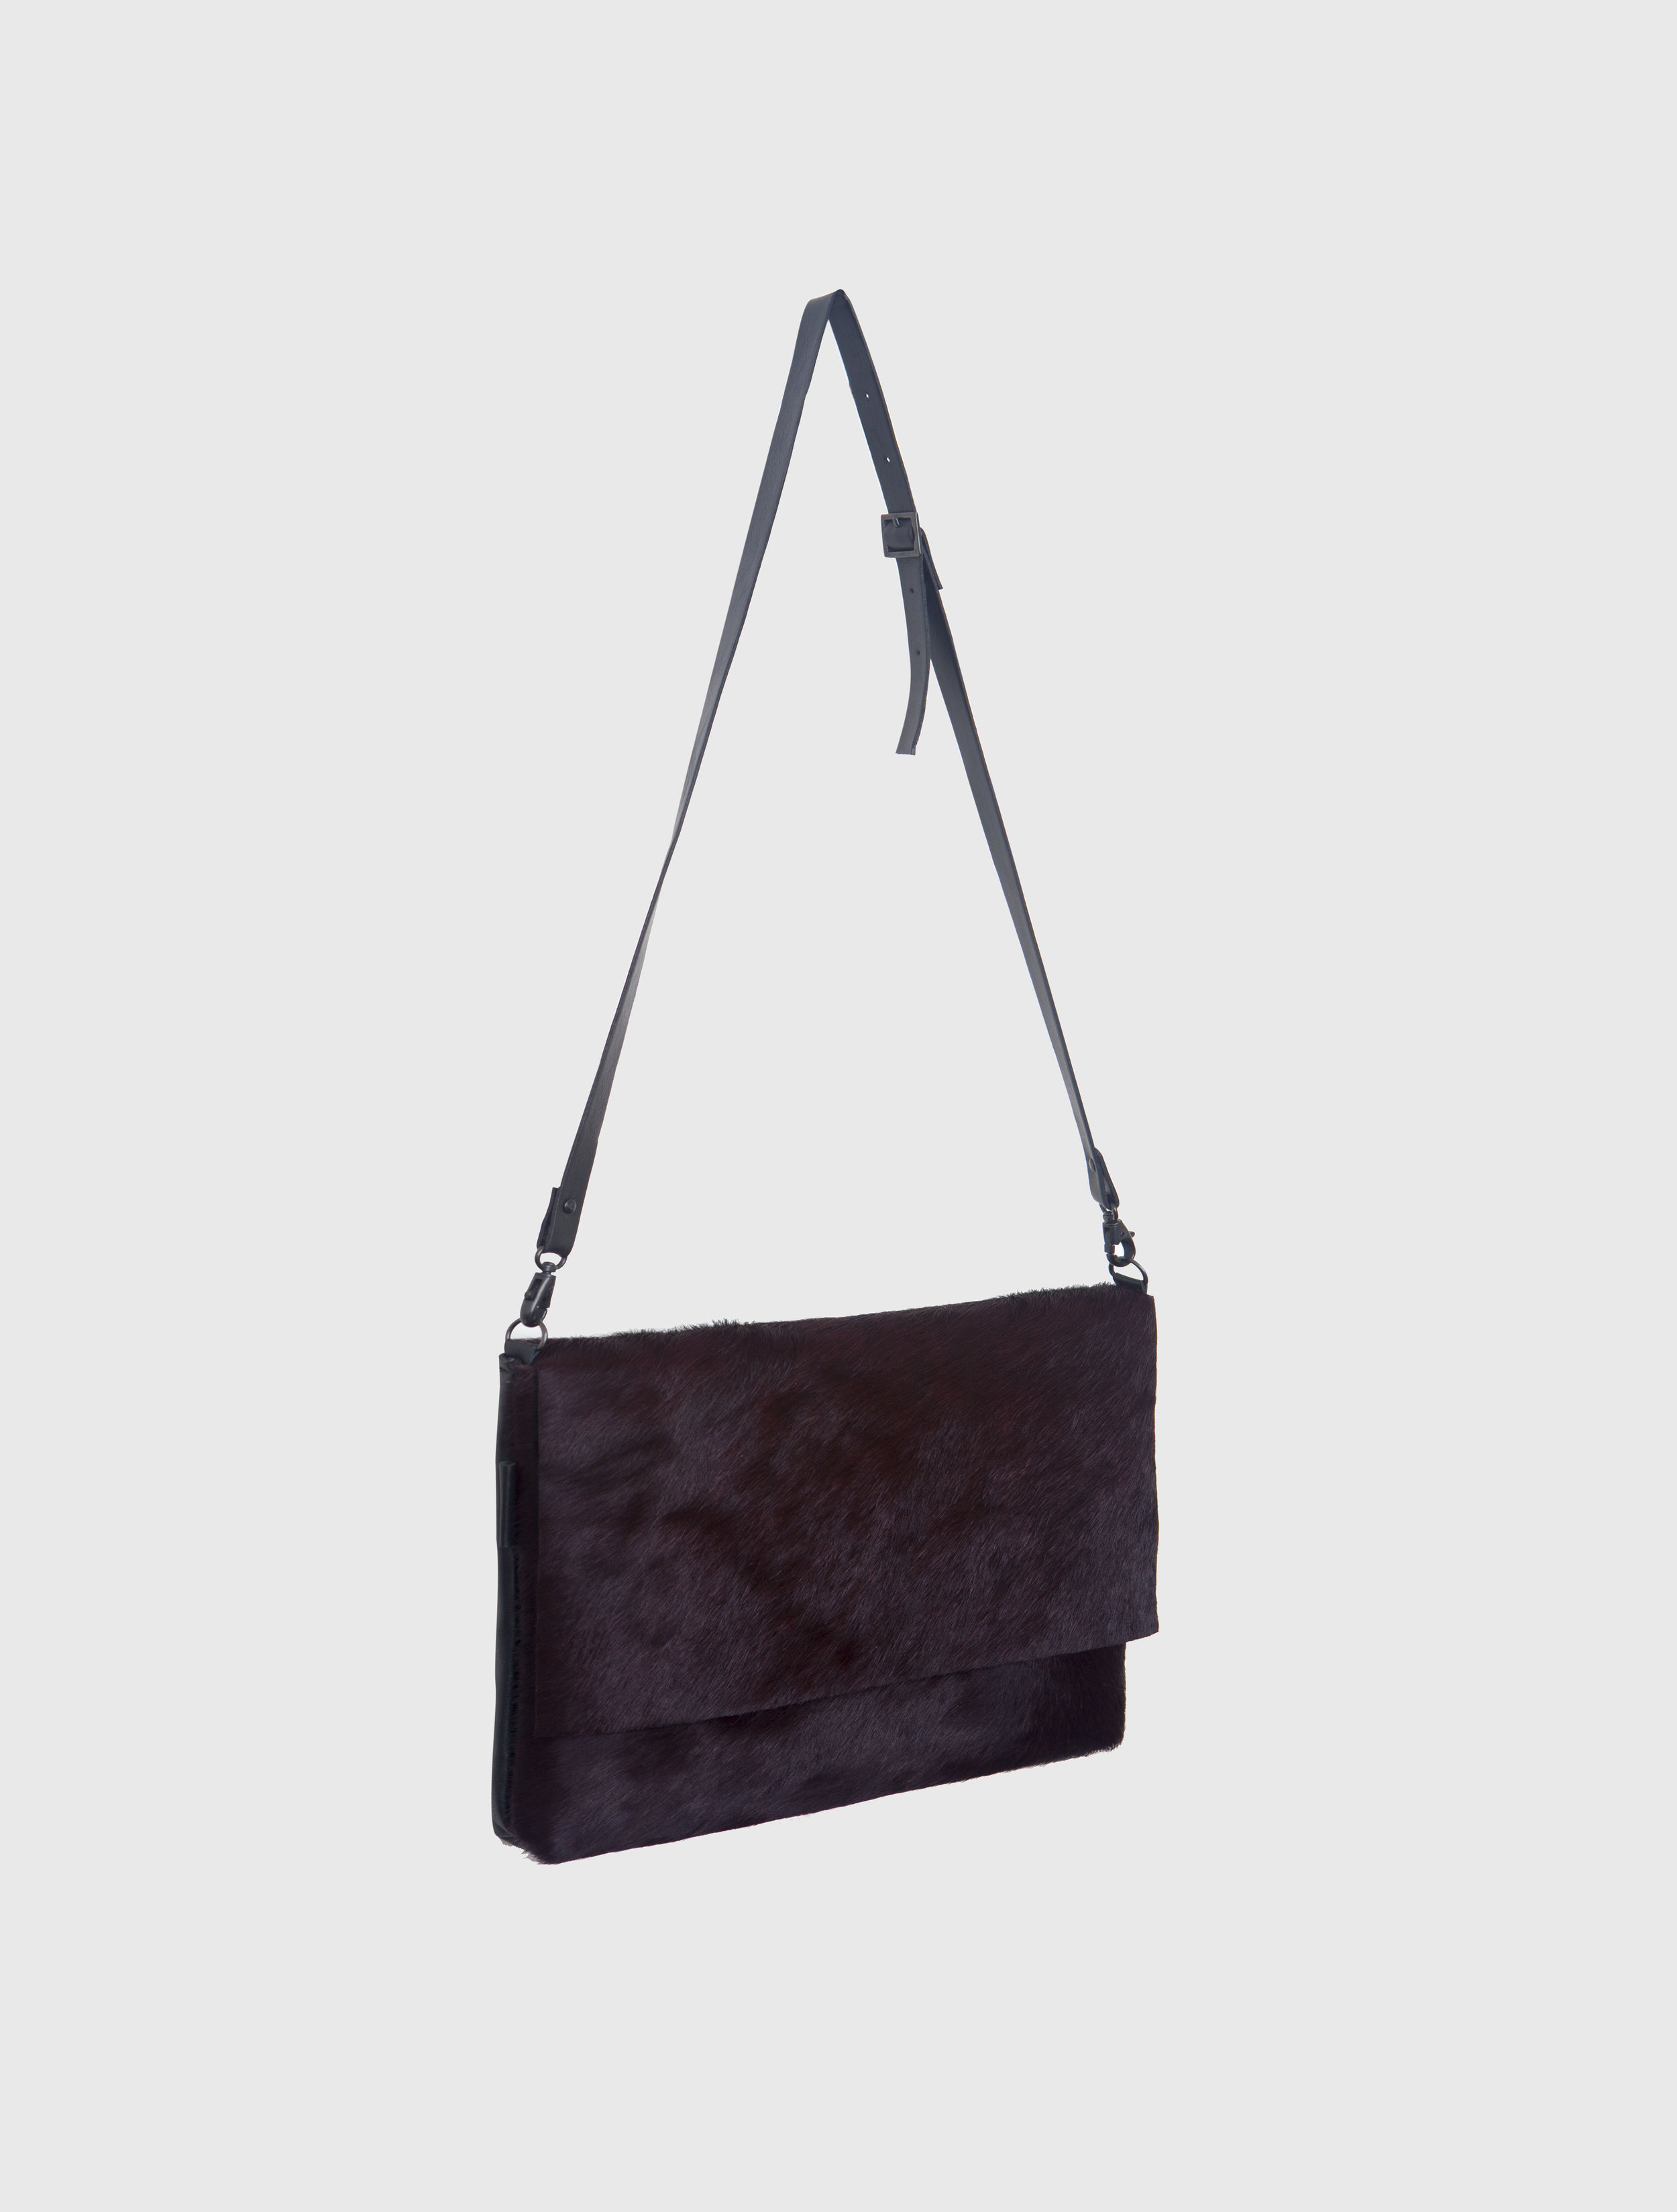 PONYSKIN LEATHER SHOULDER BAG _0001_Layer 2.jpg